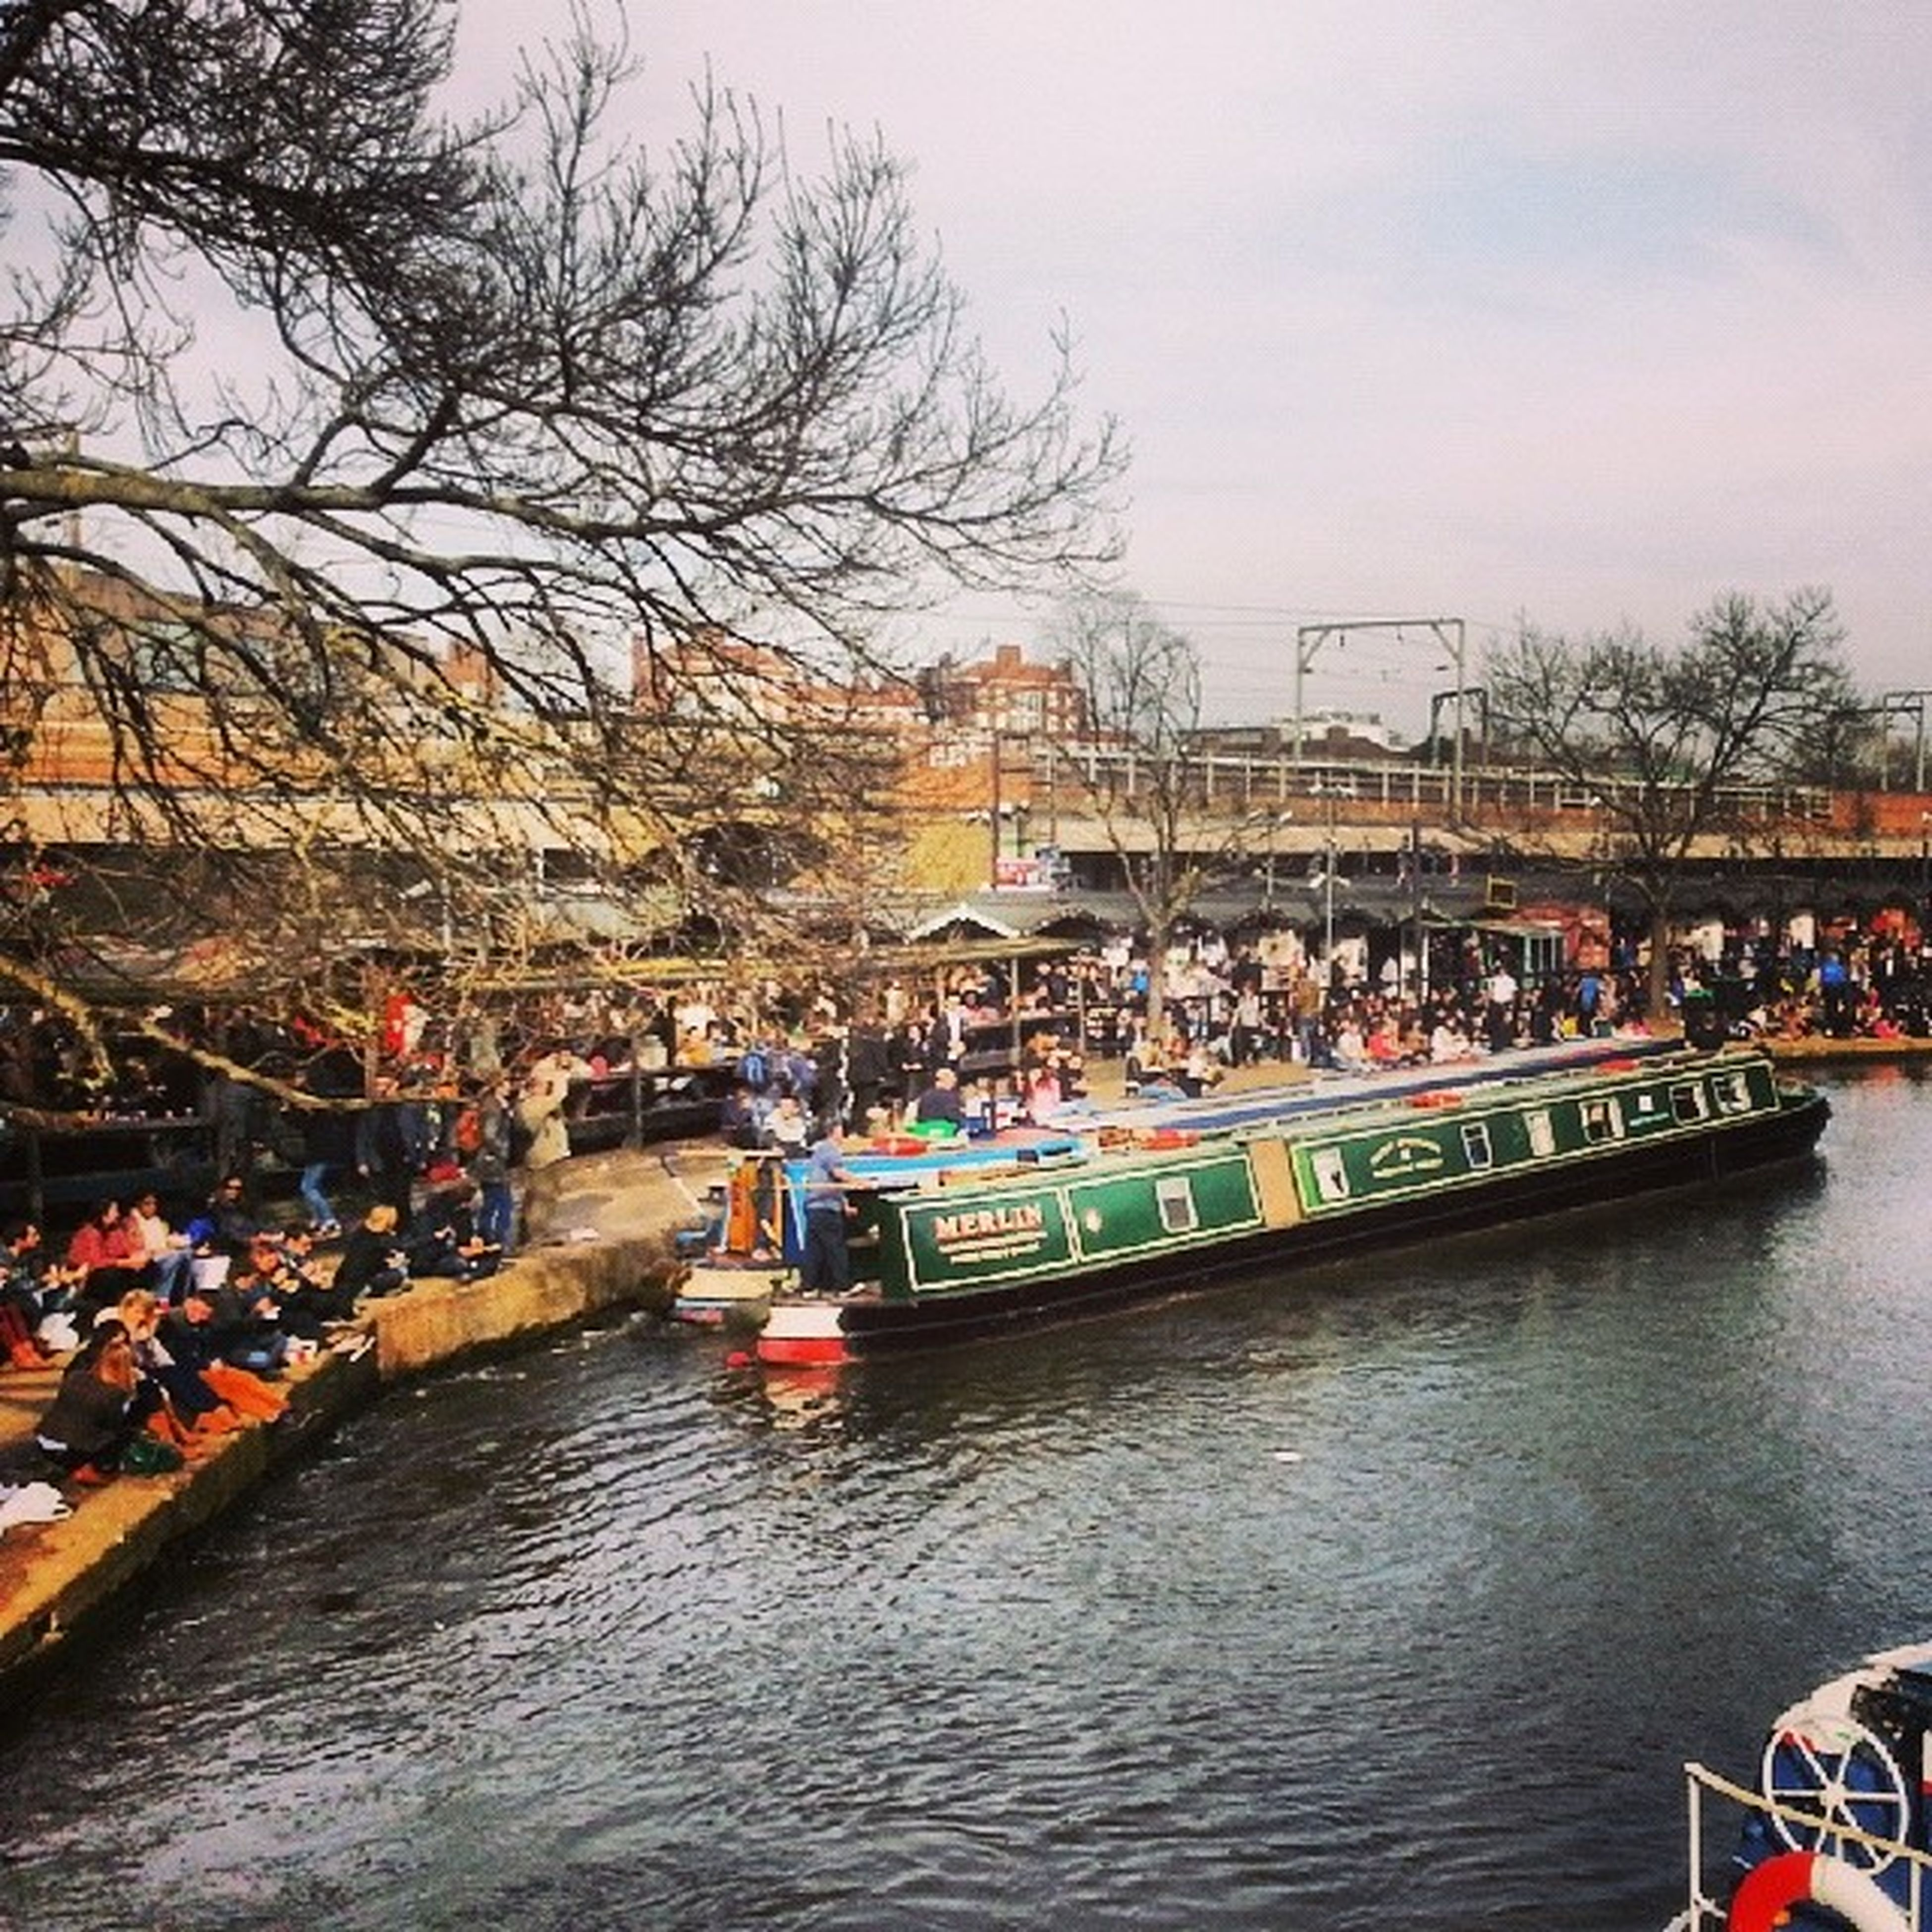 water, waterfront, architecture, built structure, building exterior, transportation, river, sky, nautical vessel, tree, mode of transport, large group of people, canal, city, rippled, boat, day, outdoors, incidental people